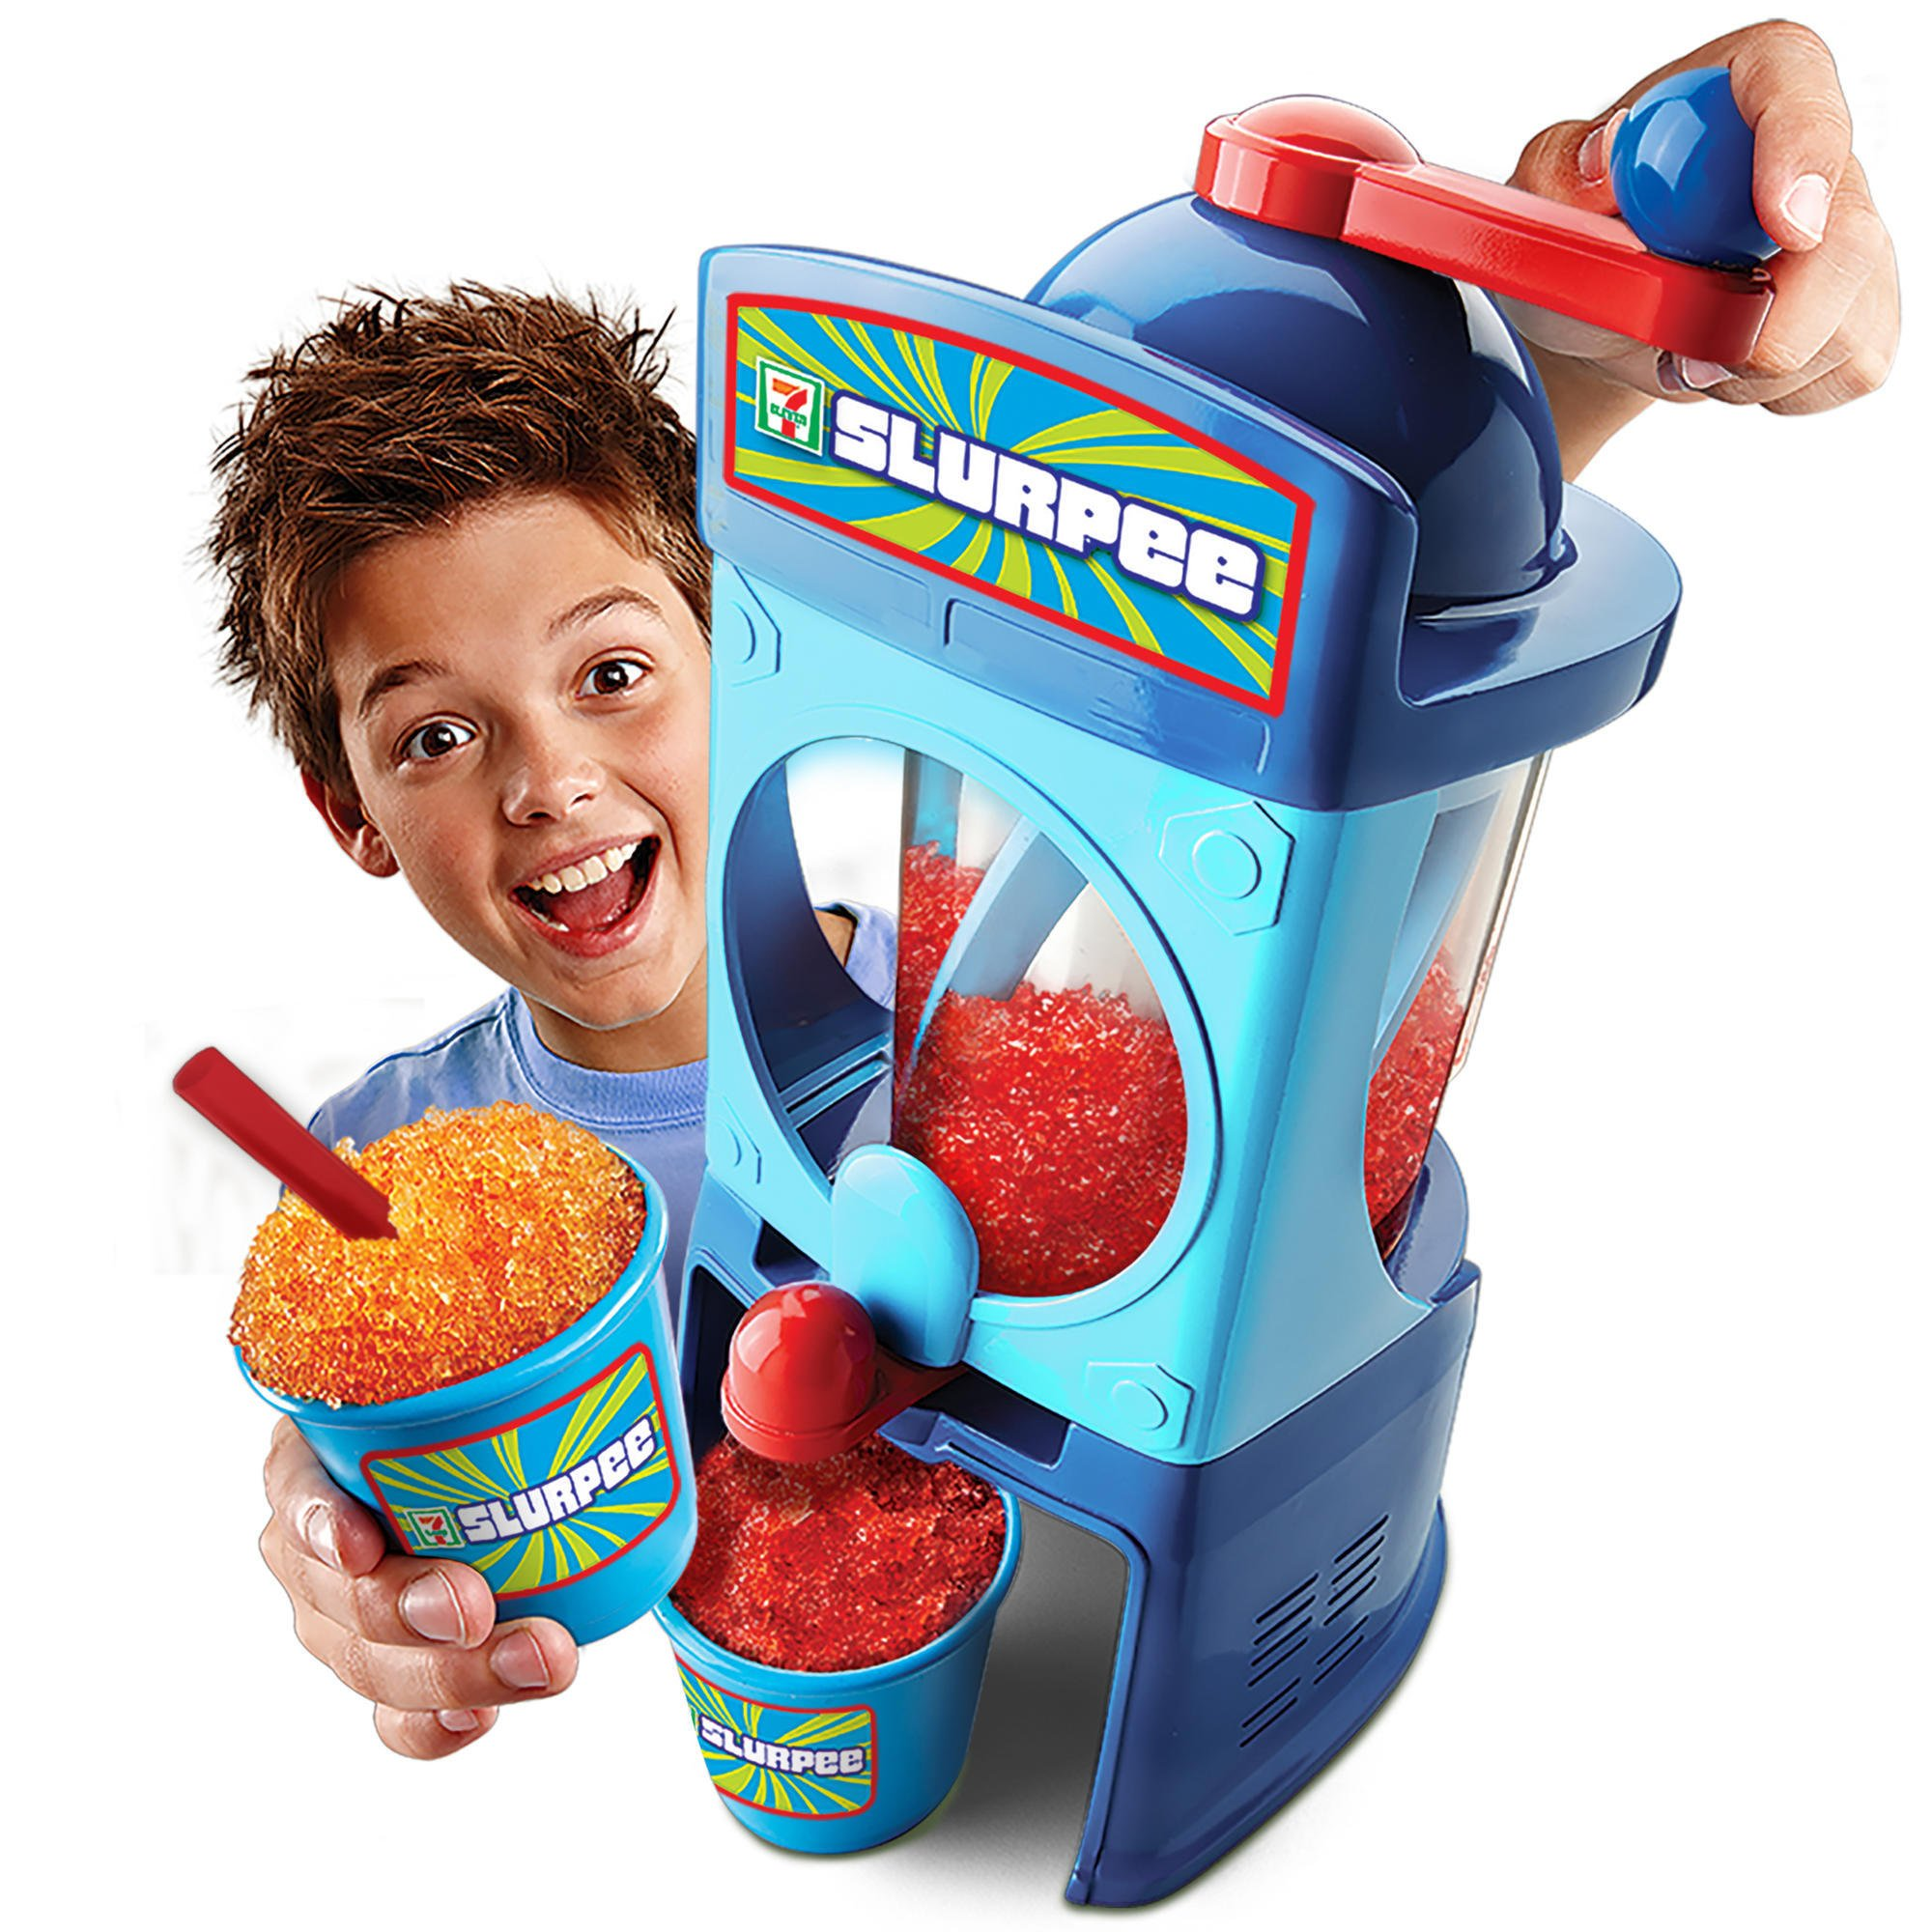 Slush Drink 7 Eleven Slurpee Maker Set